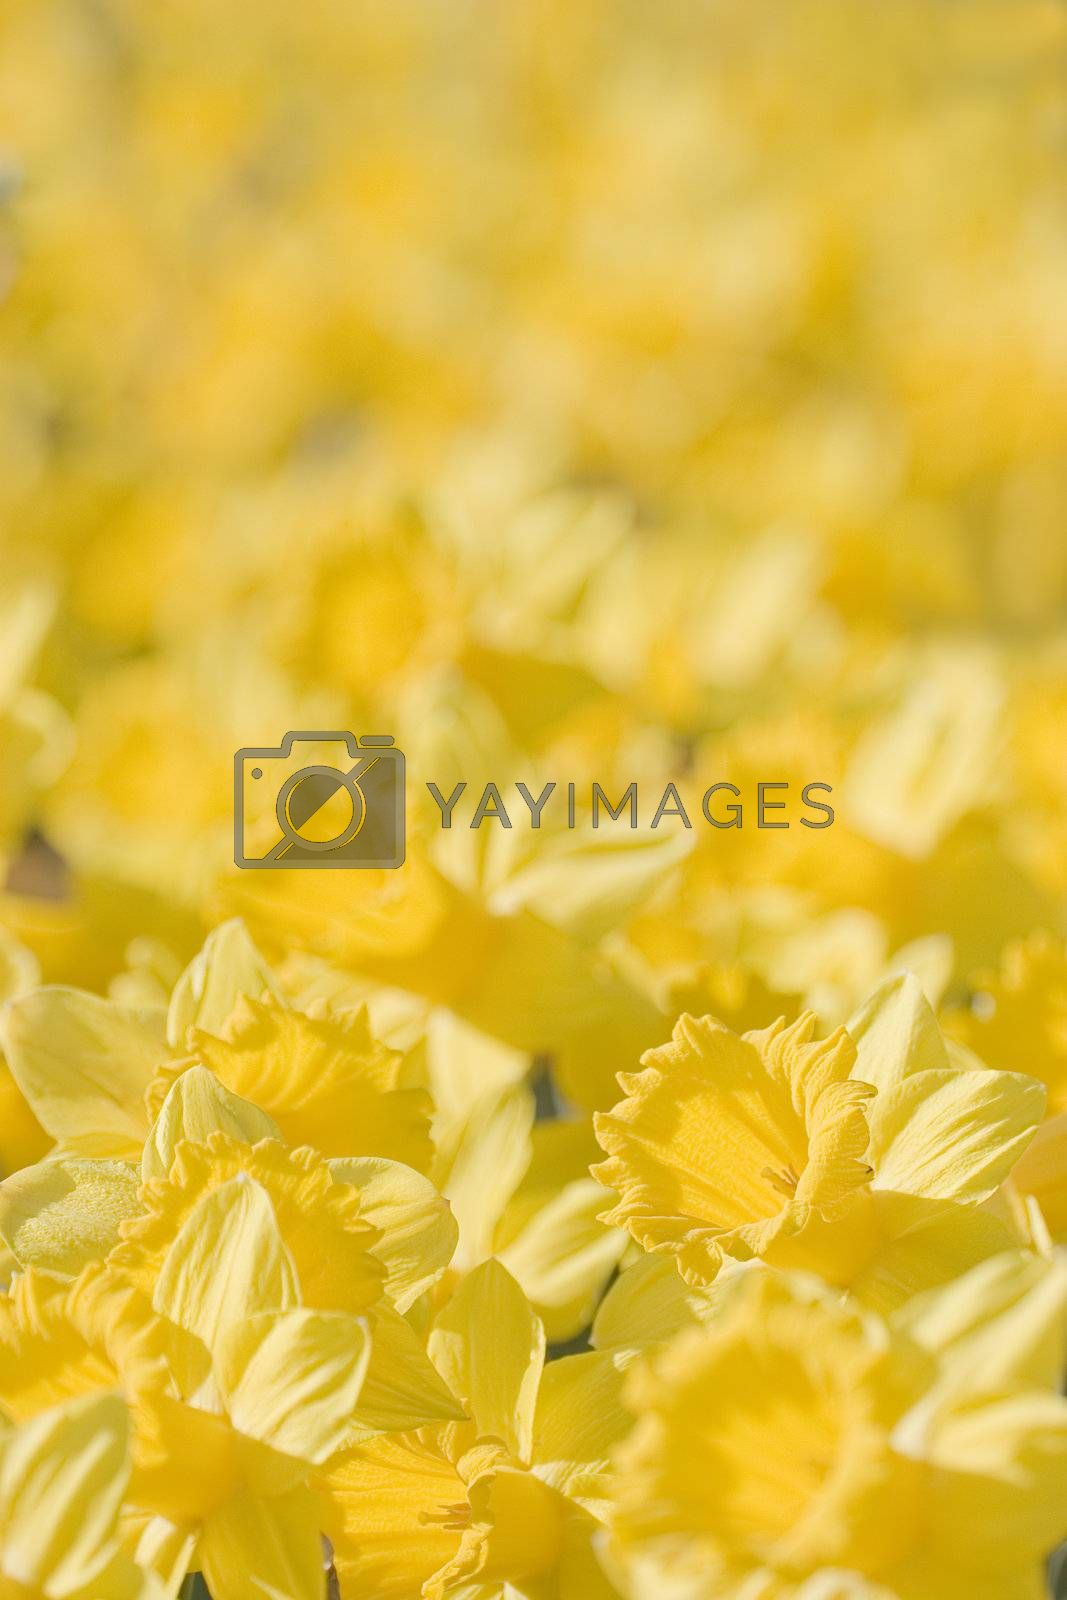 Close-up in a flowerbed of daffodils. Focus only on one daffodil in the foreground.